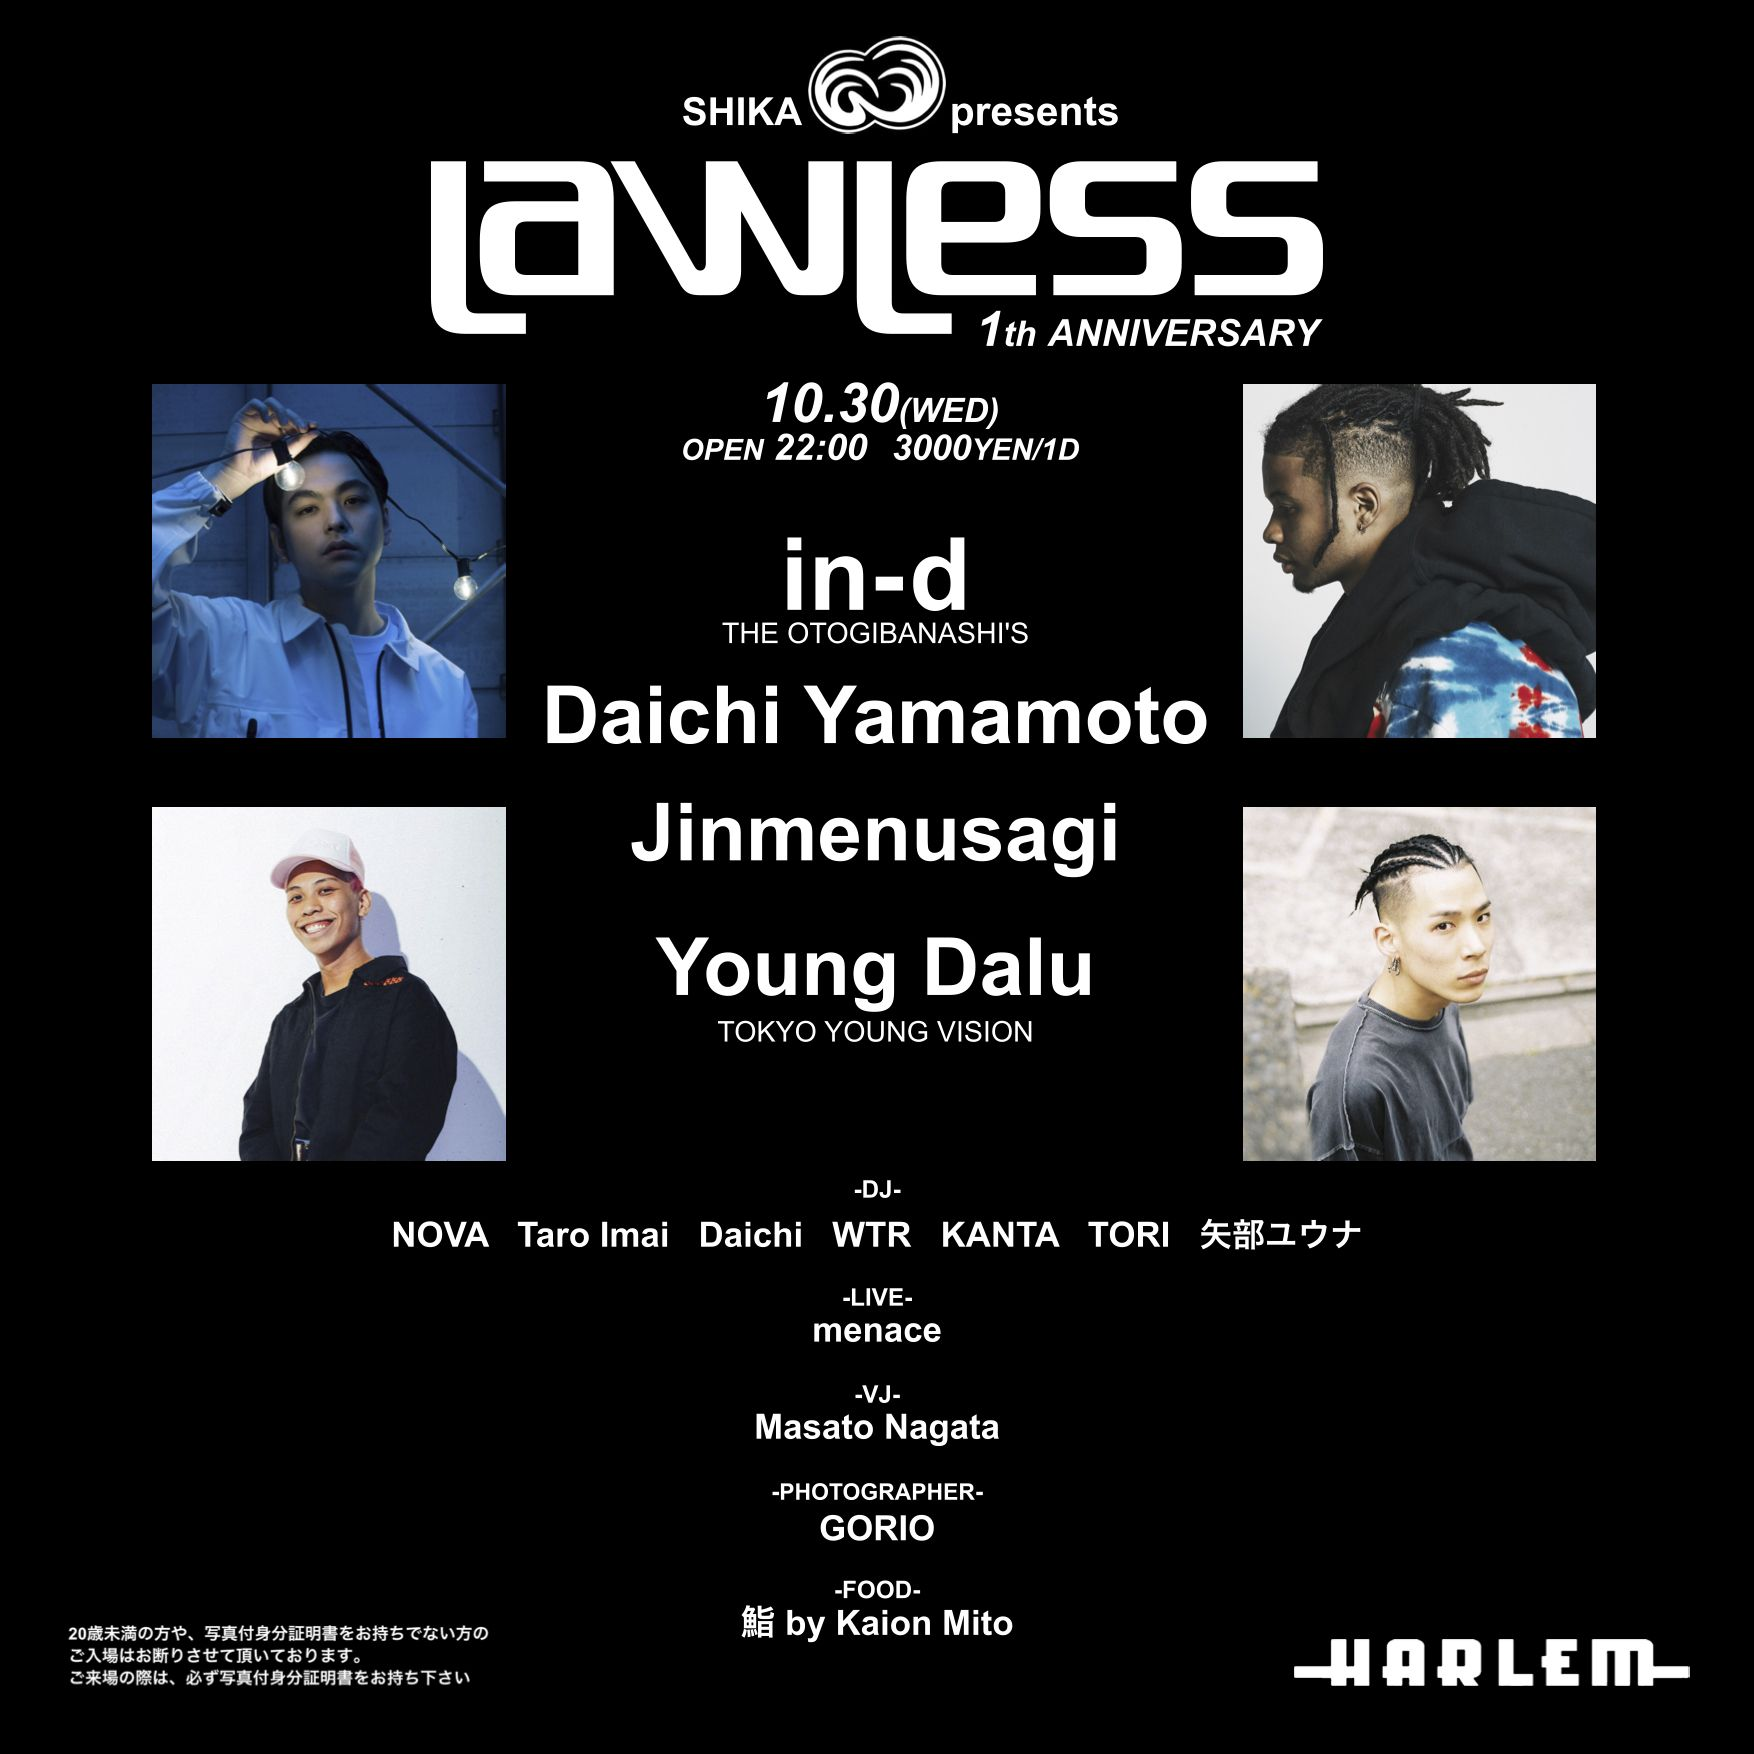 LAWLESS -1st ANNIVERSARY PARTY-